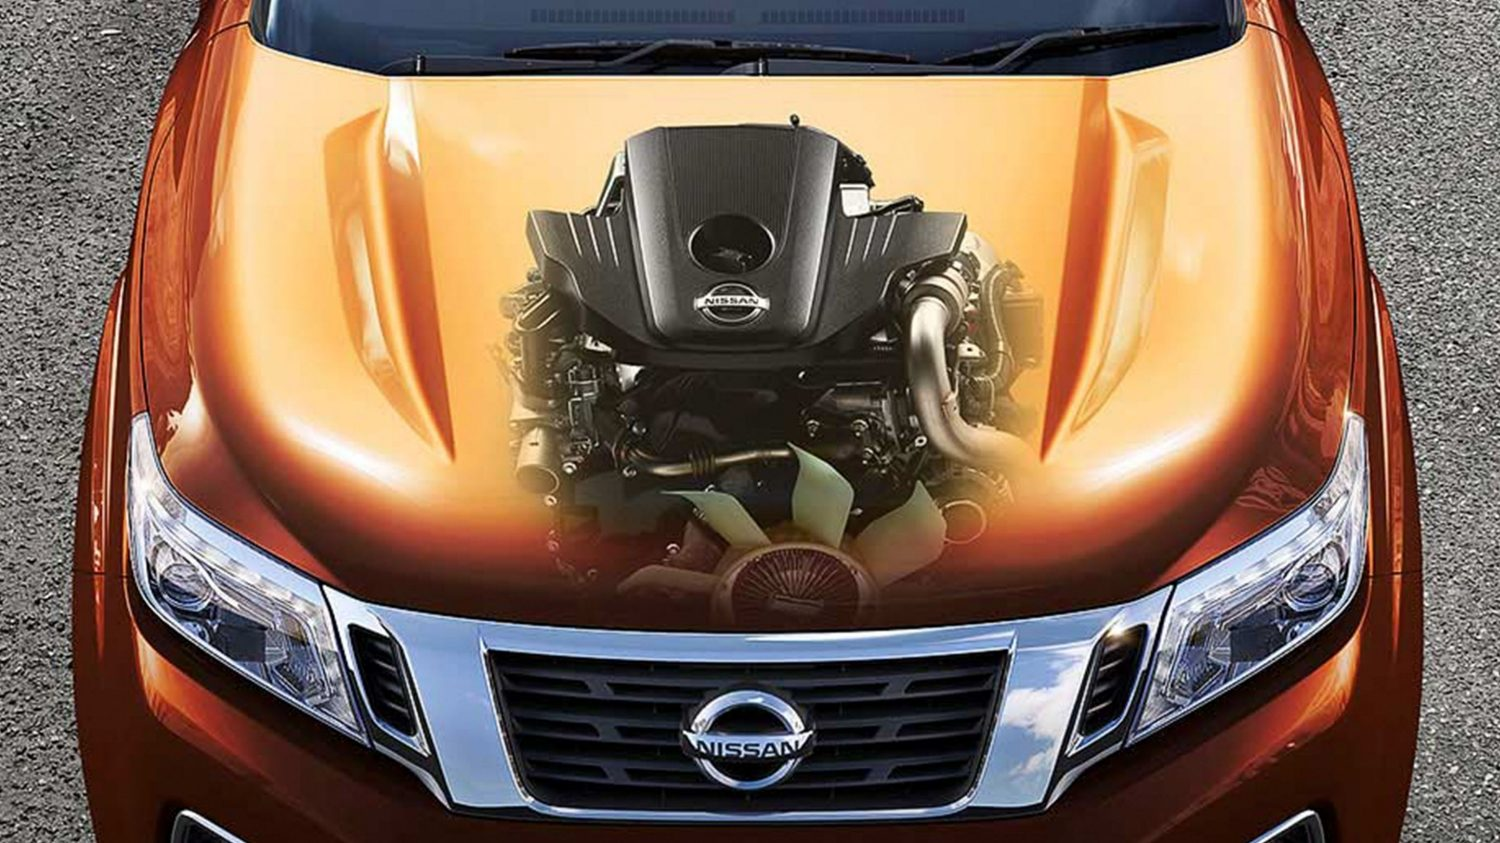 Nissan NP300 Navara - Front high angle view showing engine